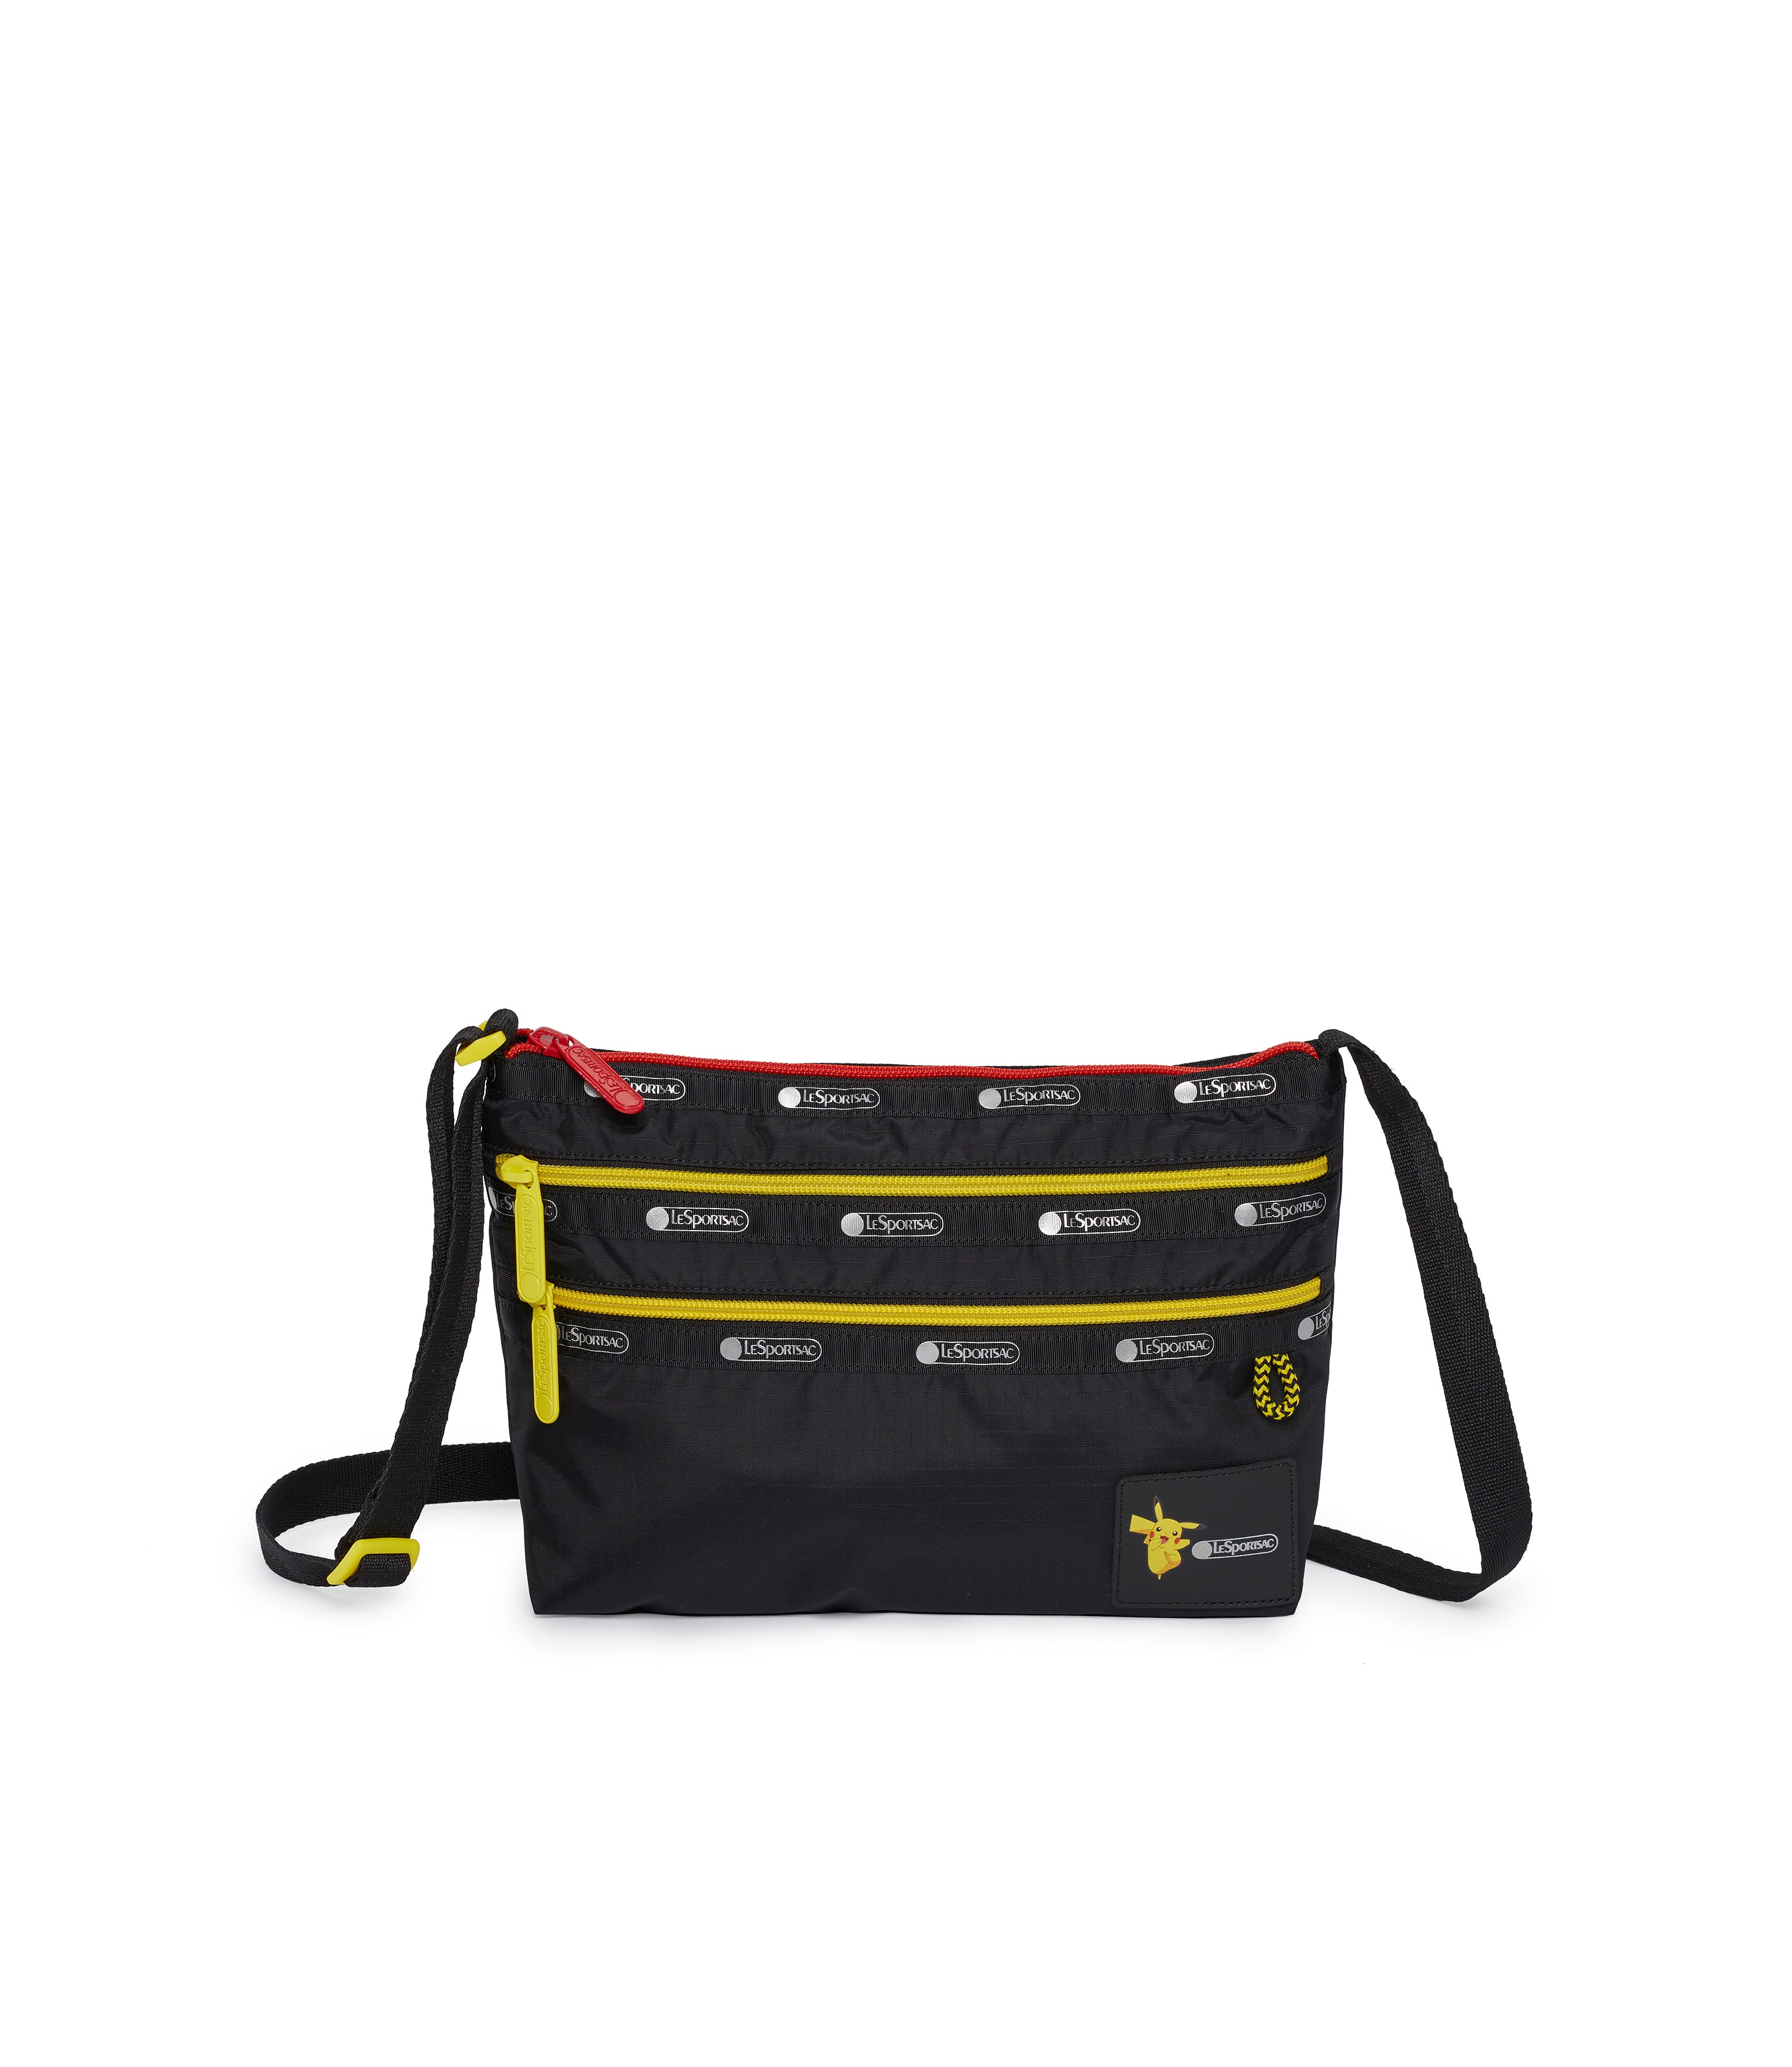 Pokémon Quinn Bag-LeSportsac-Pikachu-small-crossbody-front